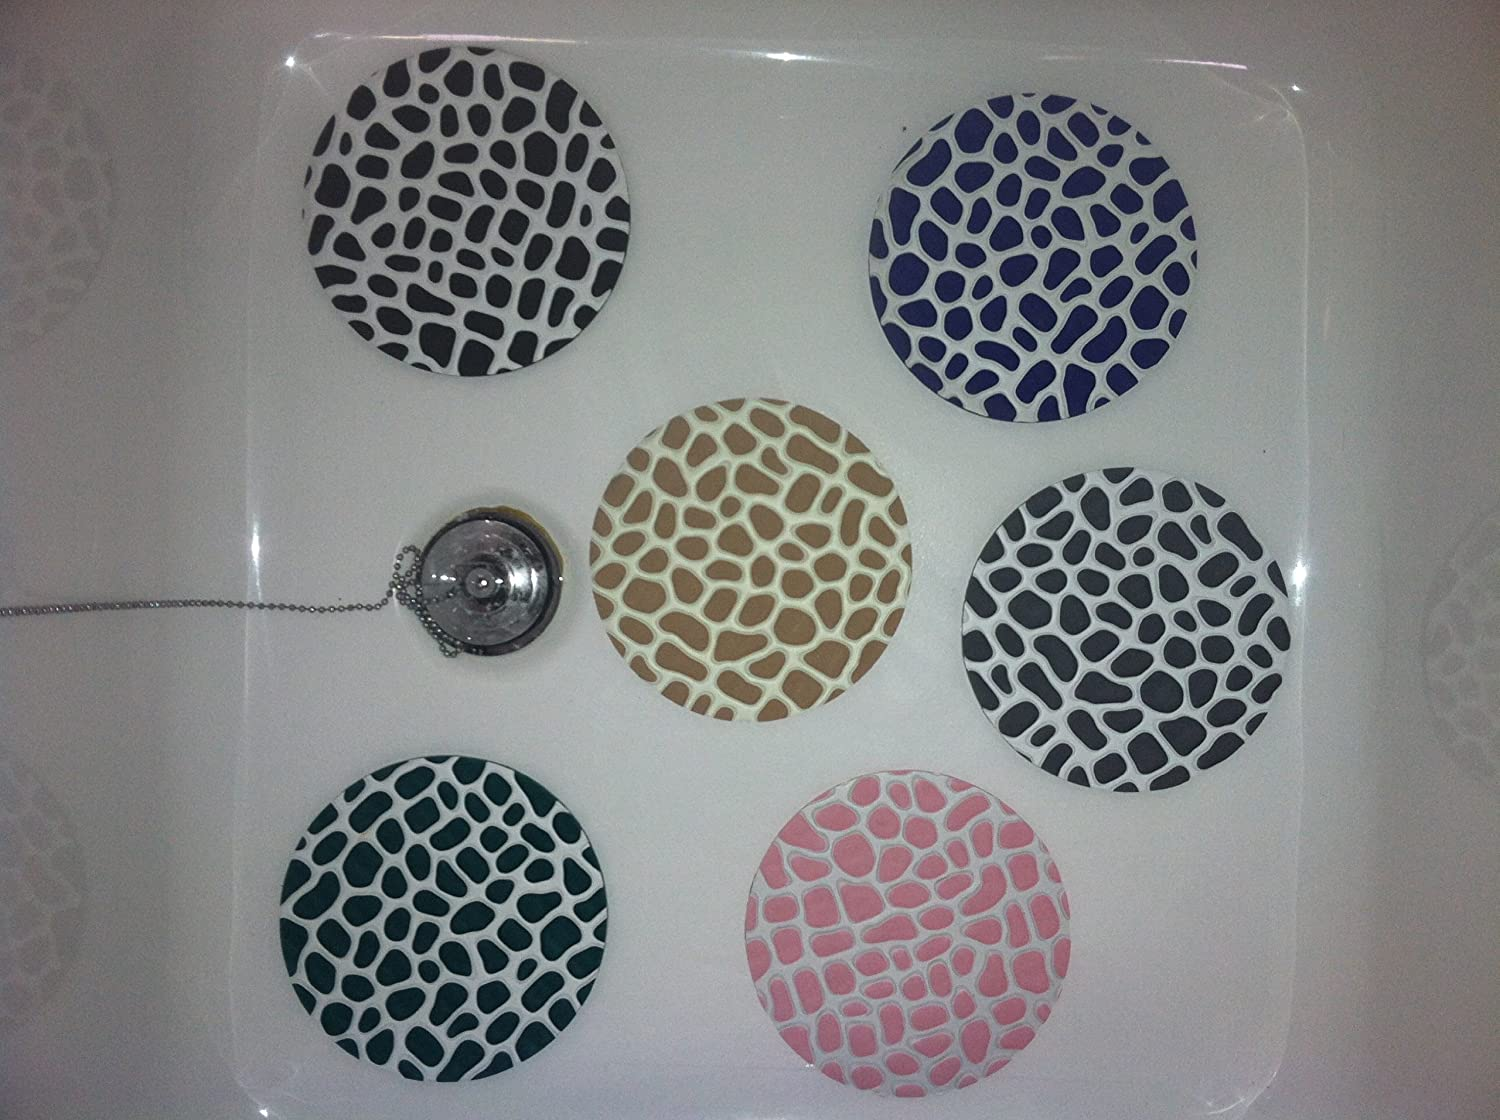 Amazon.com: Gatorgrip Nonslip Bathtub mats - circle shapes: Home ...